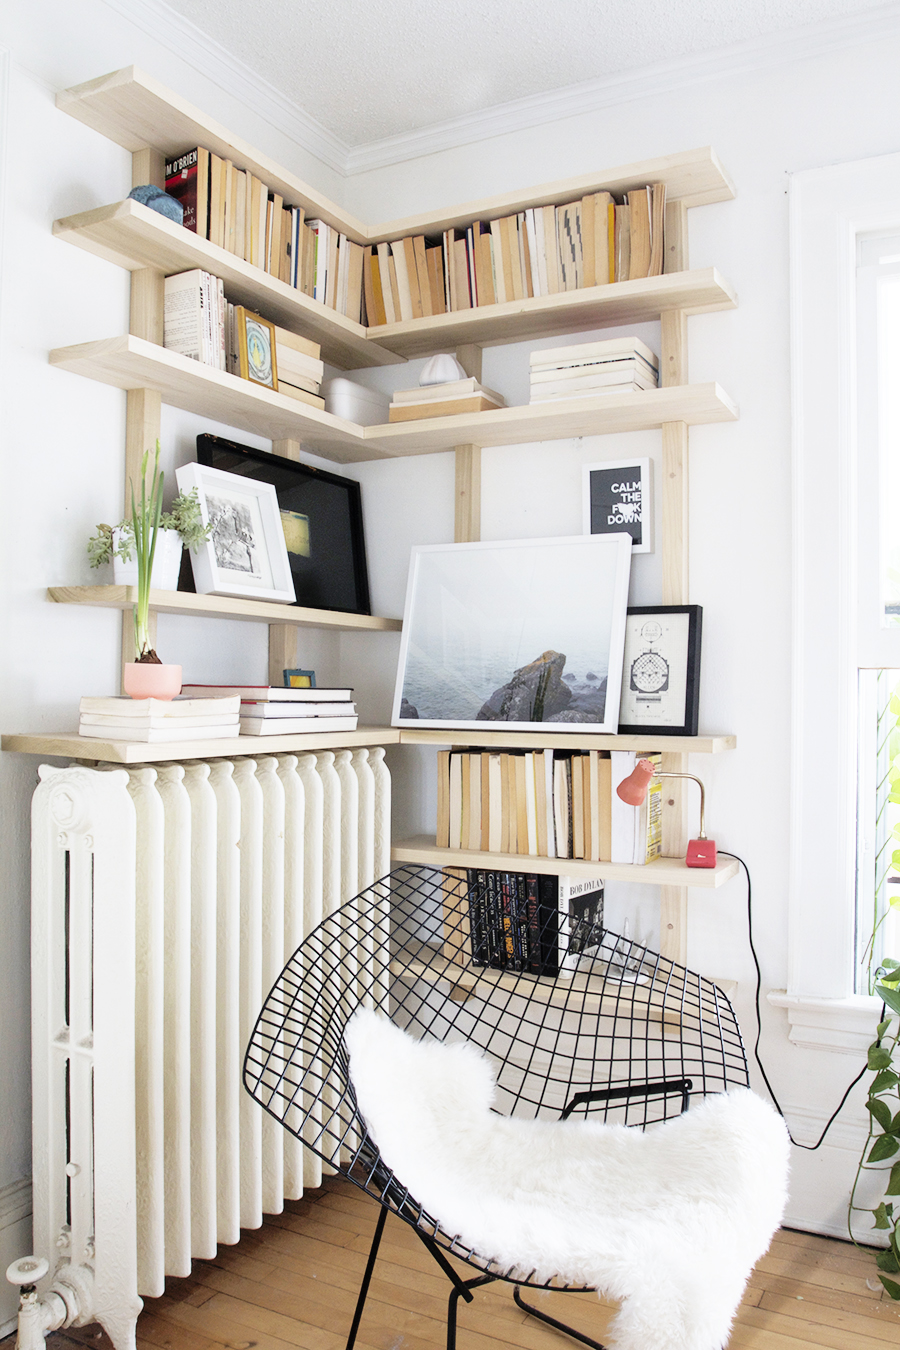 How To Make A Corner Bookshelf 58 Diy Methods Guide